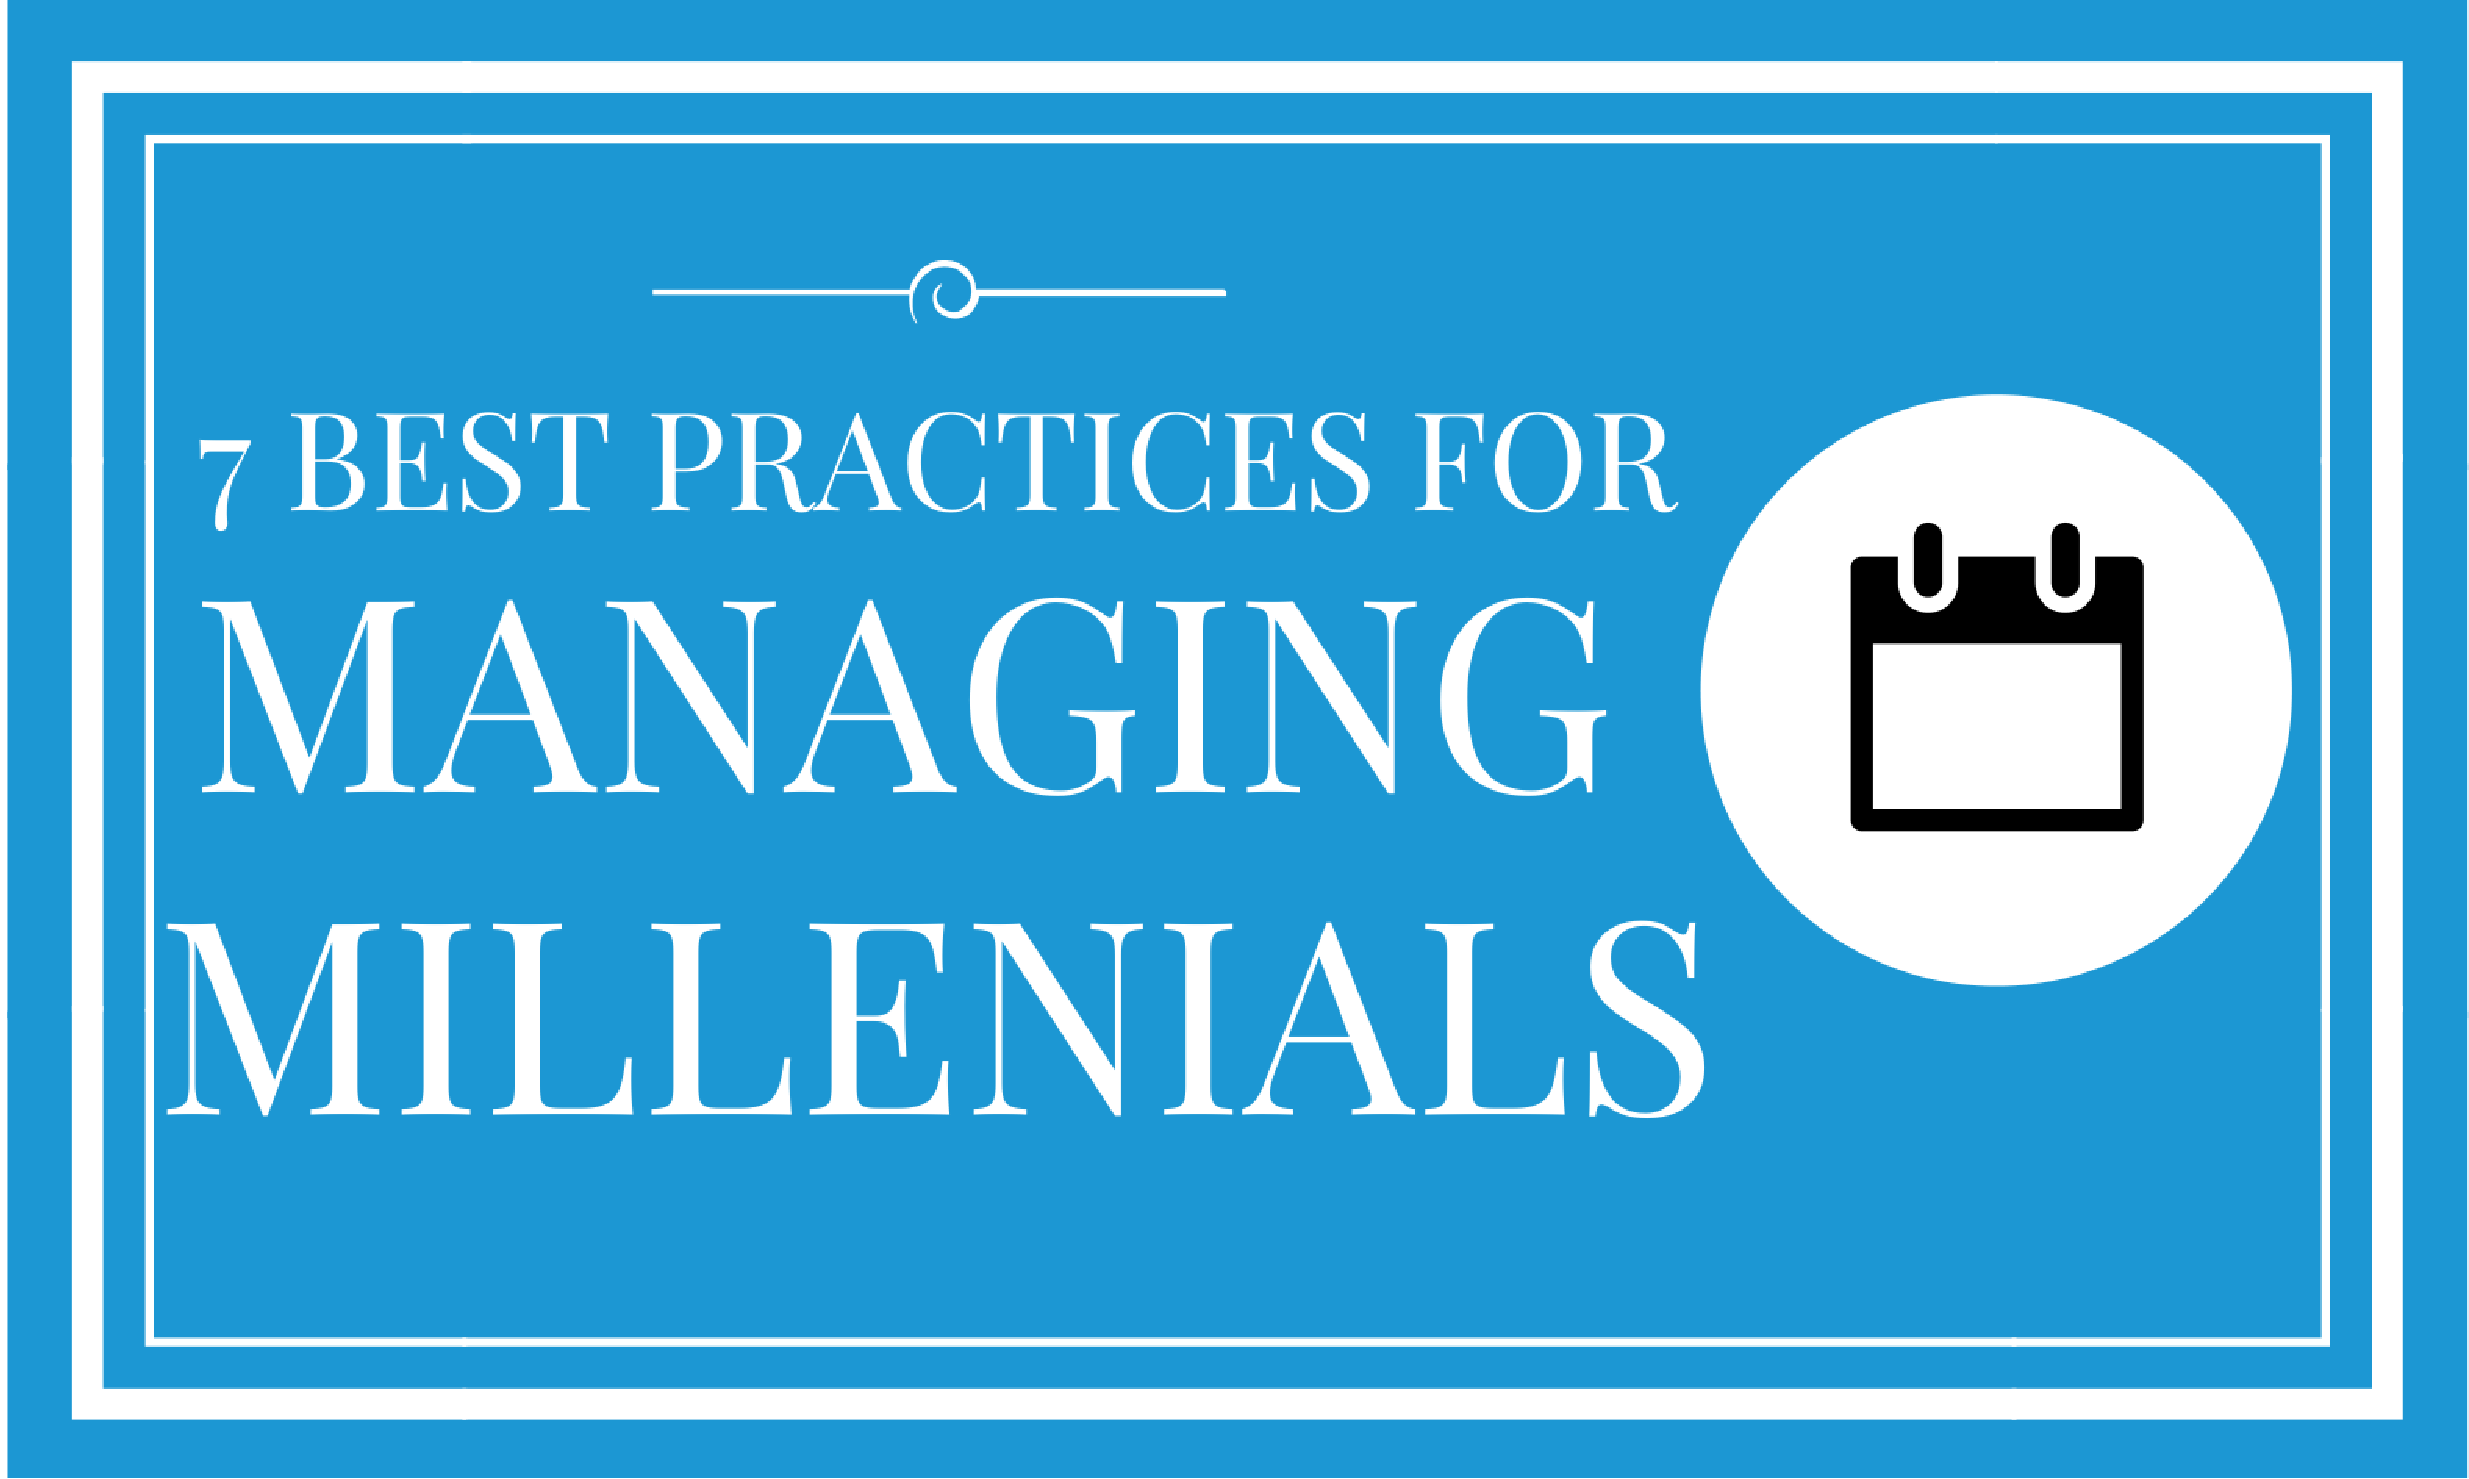 17 Best Practices for Managing Millenials